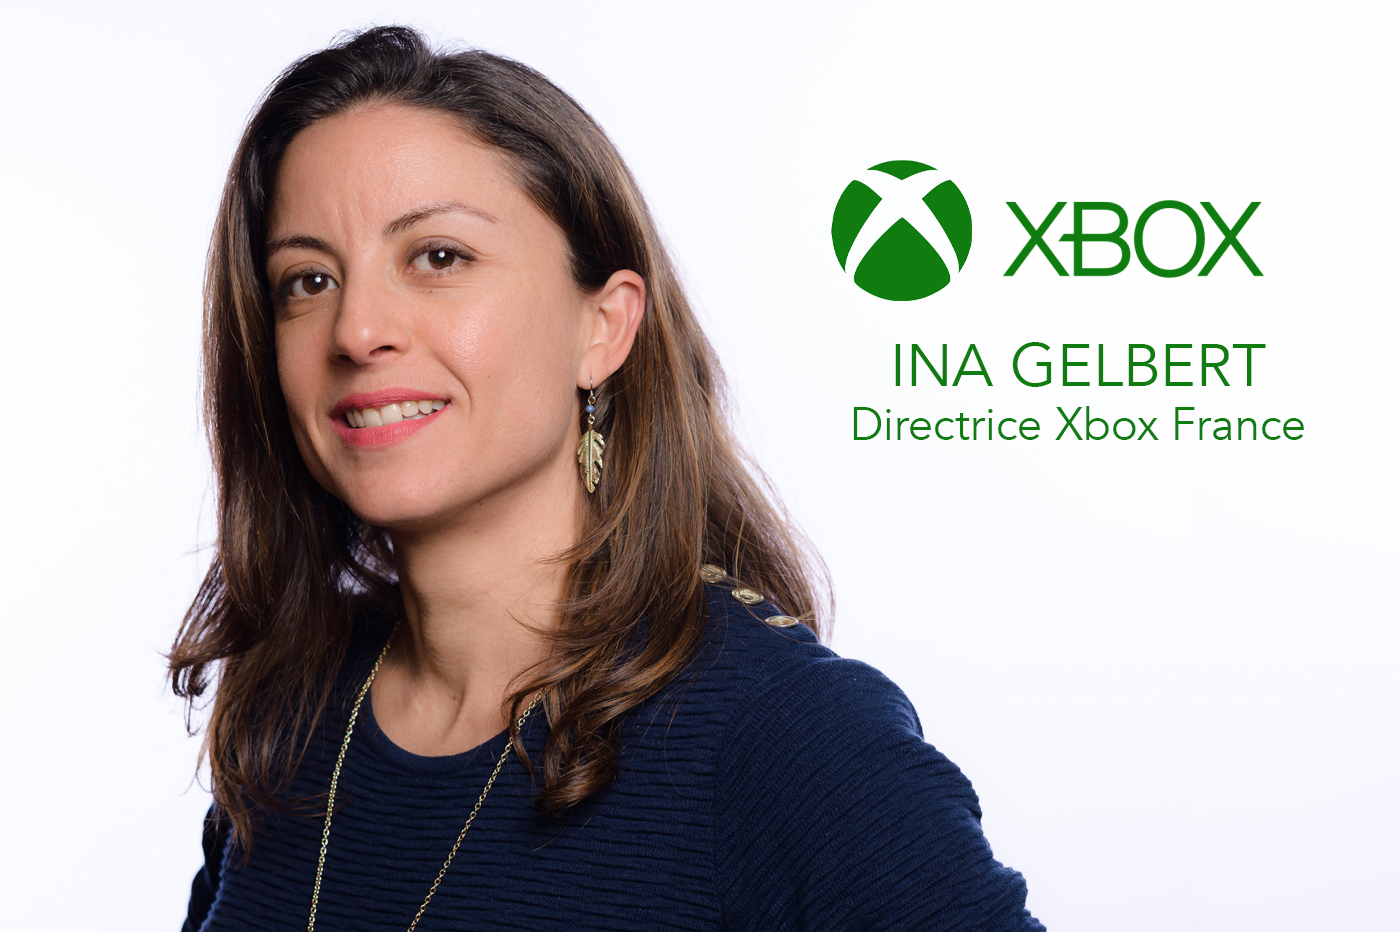 Ina Gelbert Directrice Xbox France